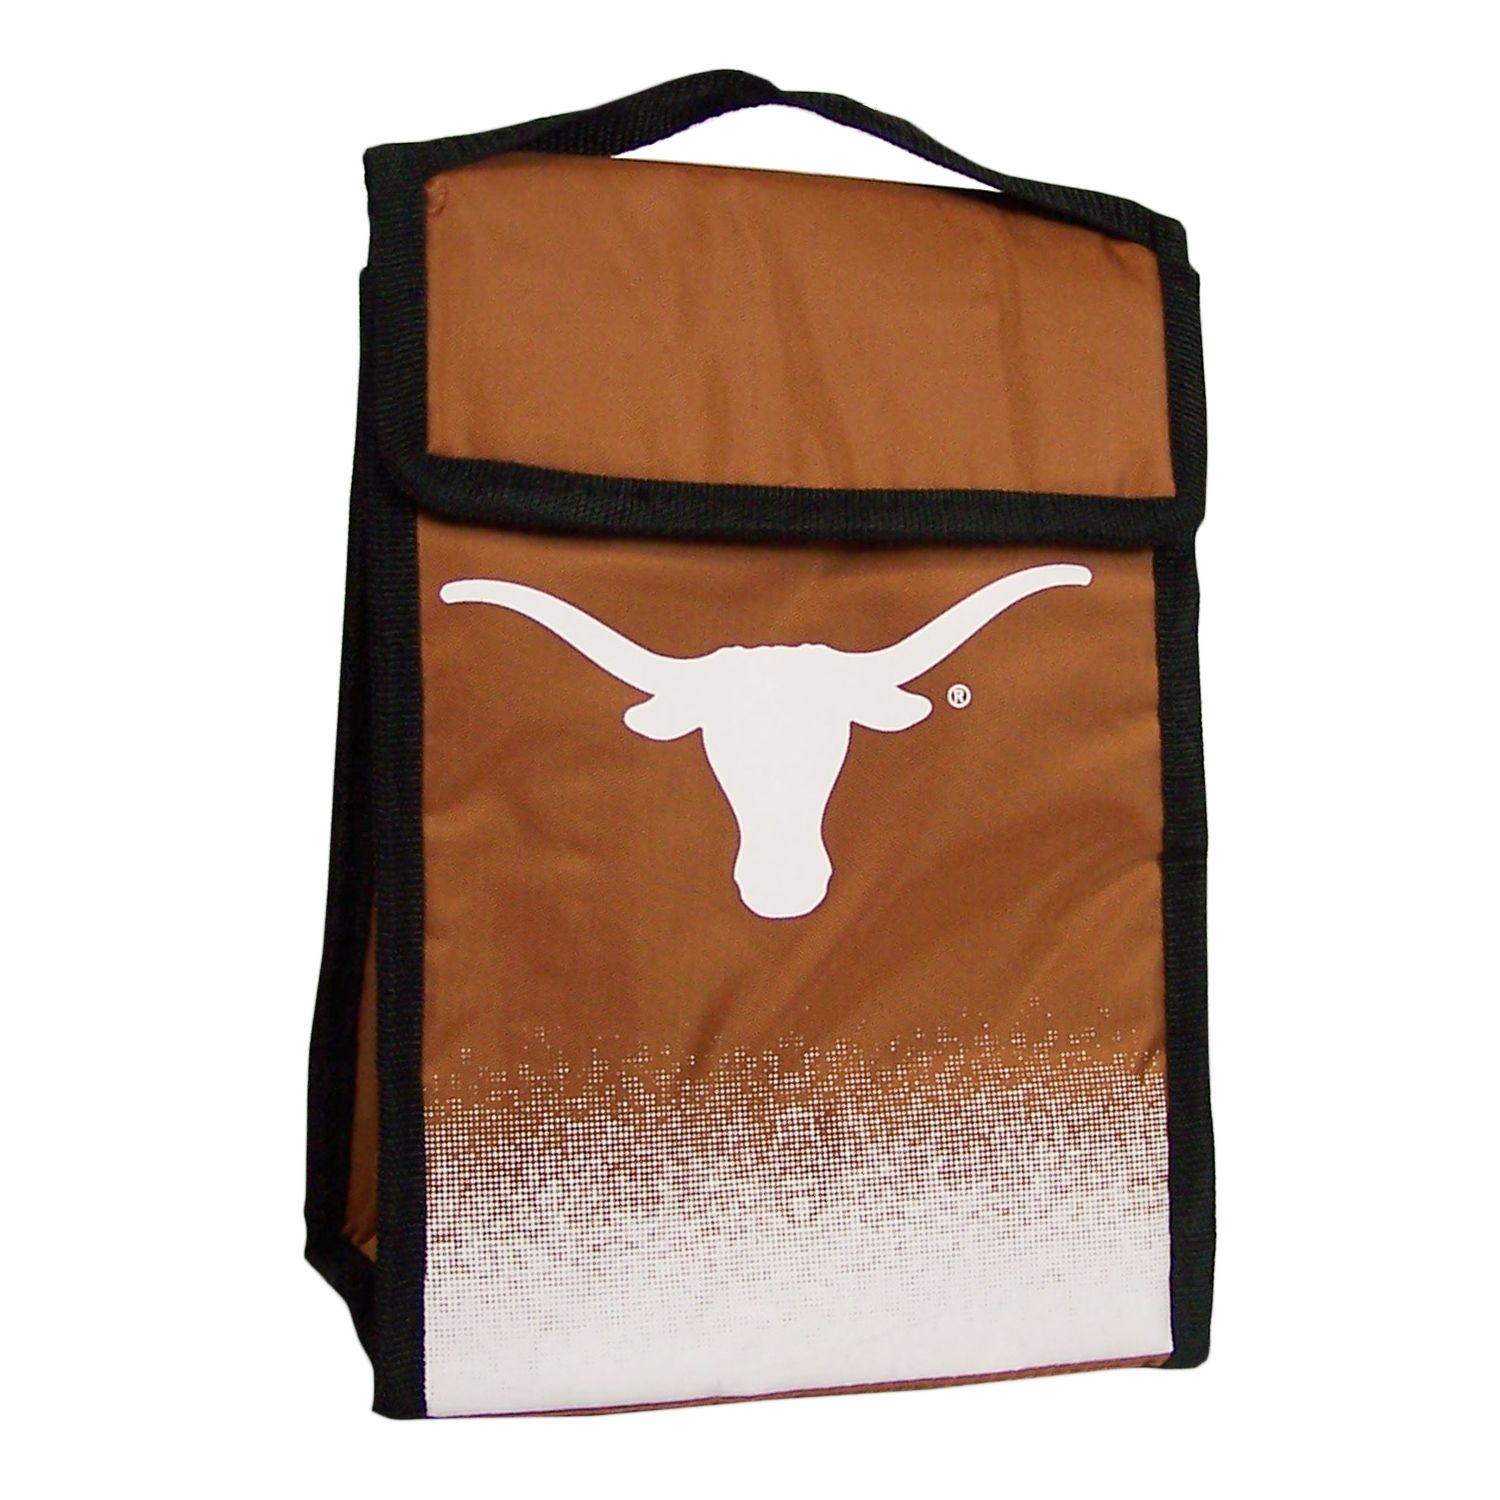 Texas Longhorns Official NCAA Lunch Box Bag by Forever Collectibles 067726